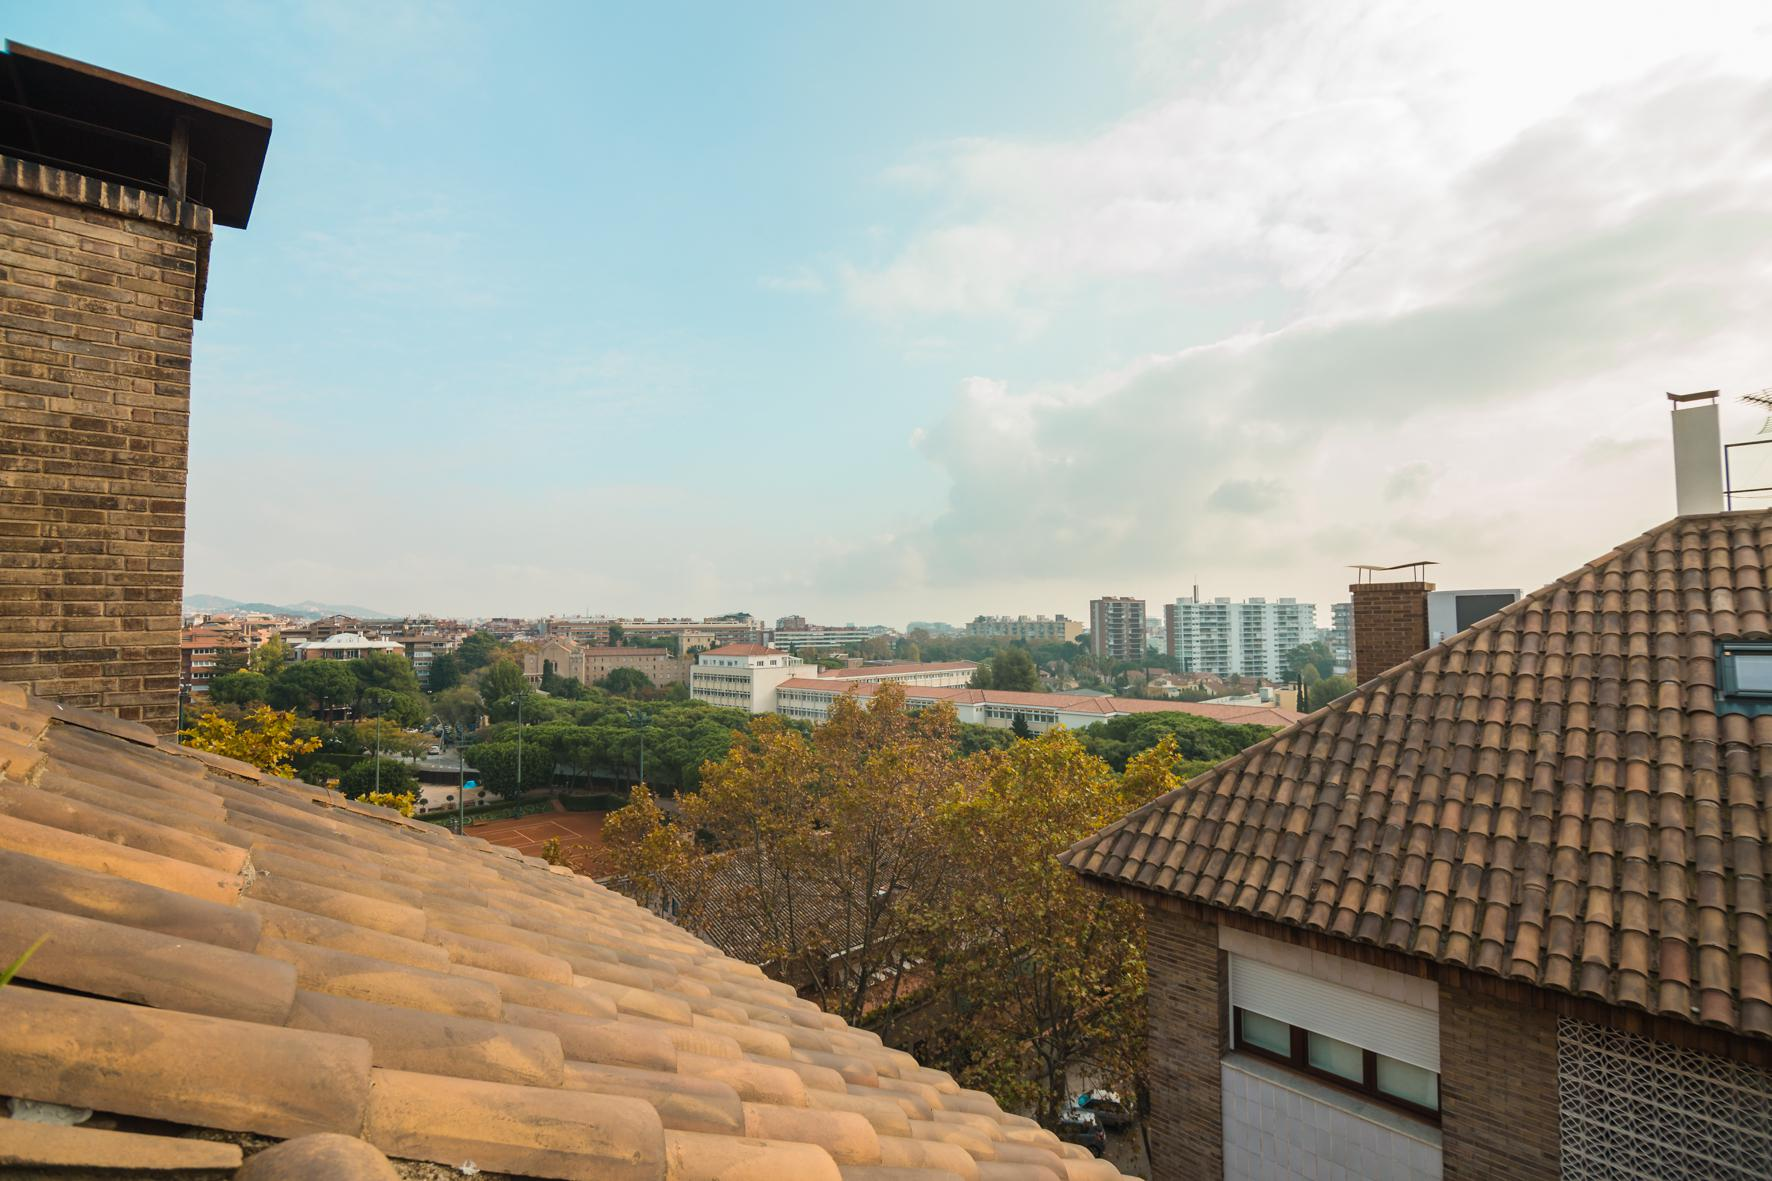 244103 Penthouse for sale in Les Corts, Pedralbes 14